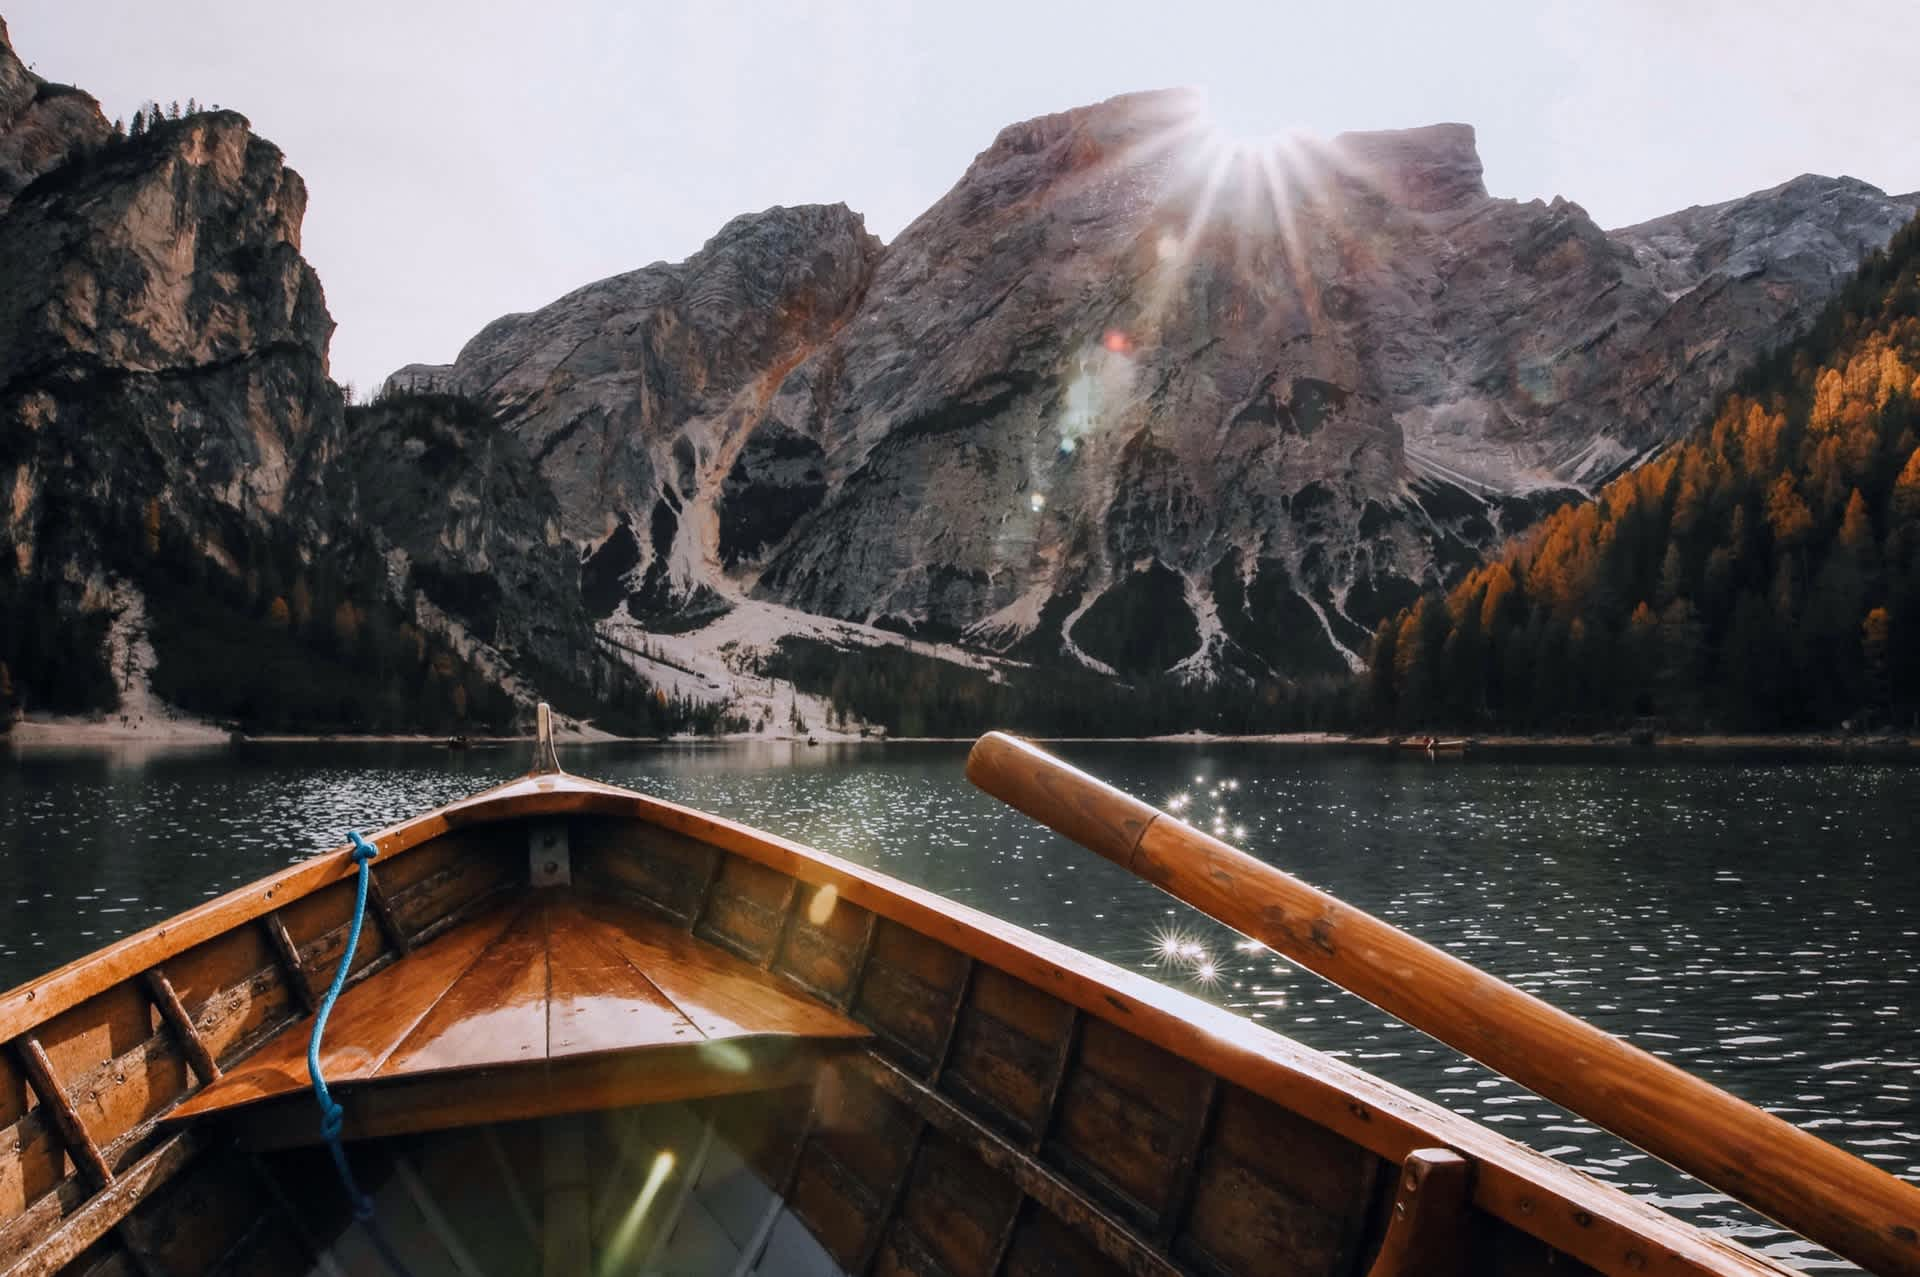 Scenic mountains and rowboat